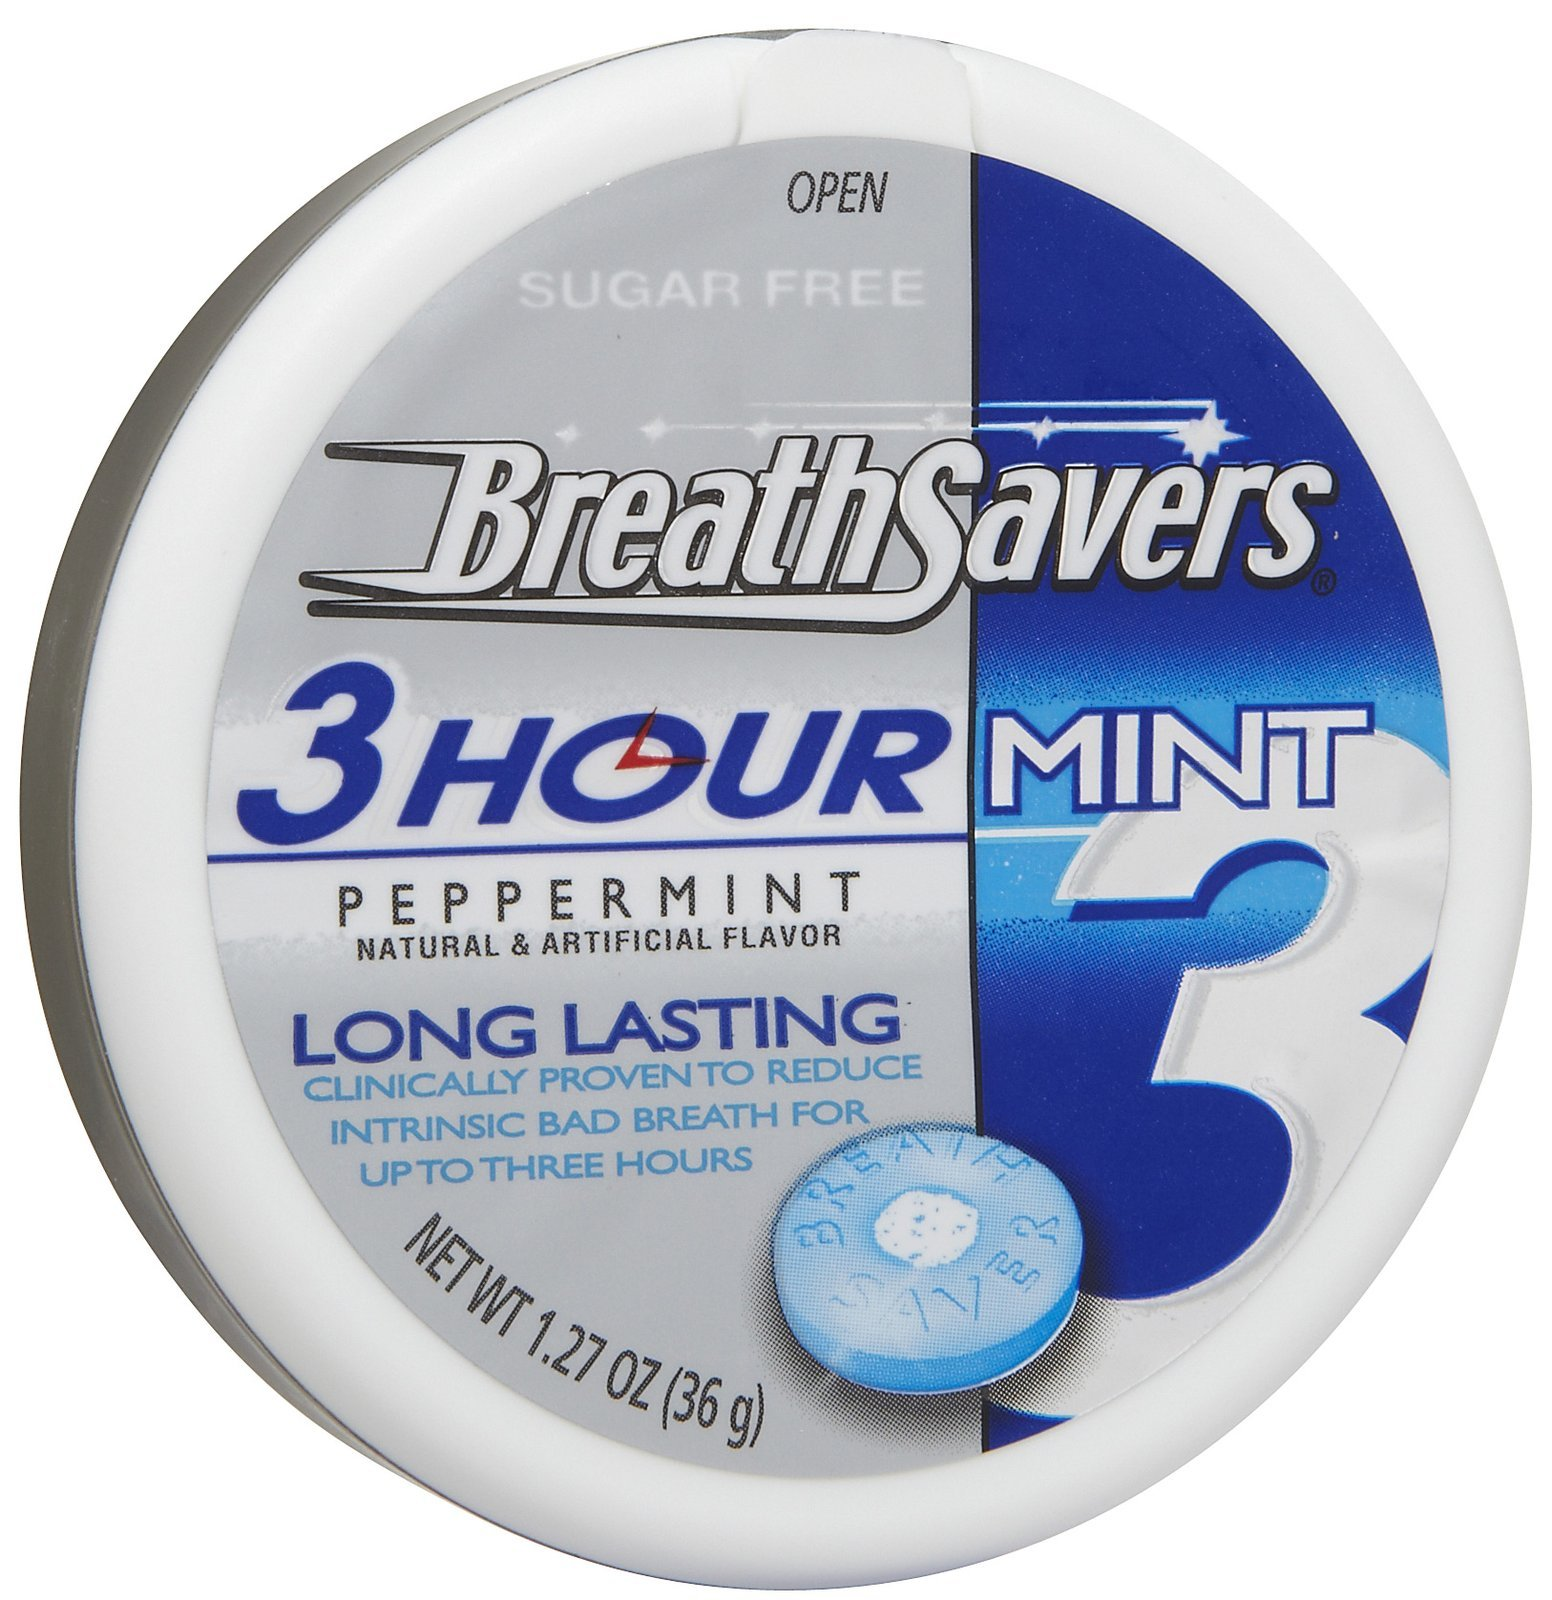 BreathSavers 3-Hour Peppermint, 1.27 oz, 8 ct by Breath Savers